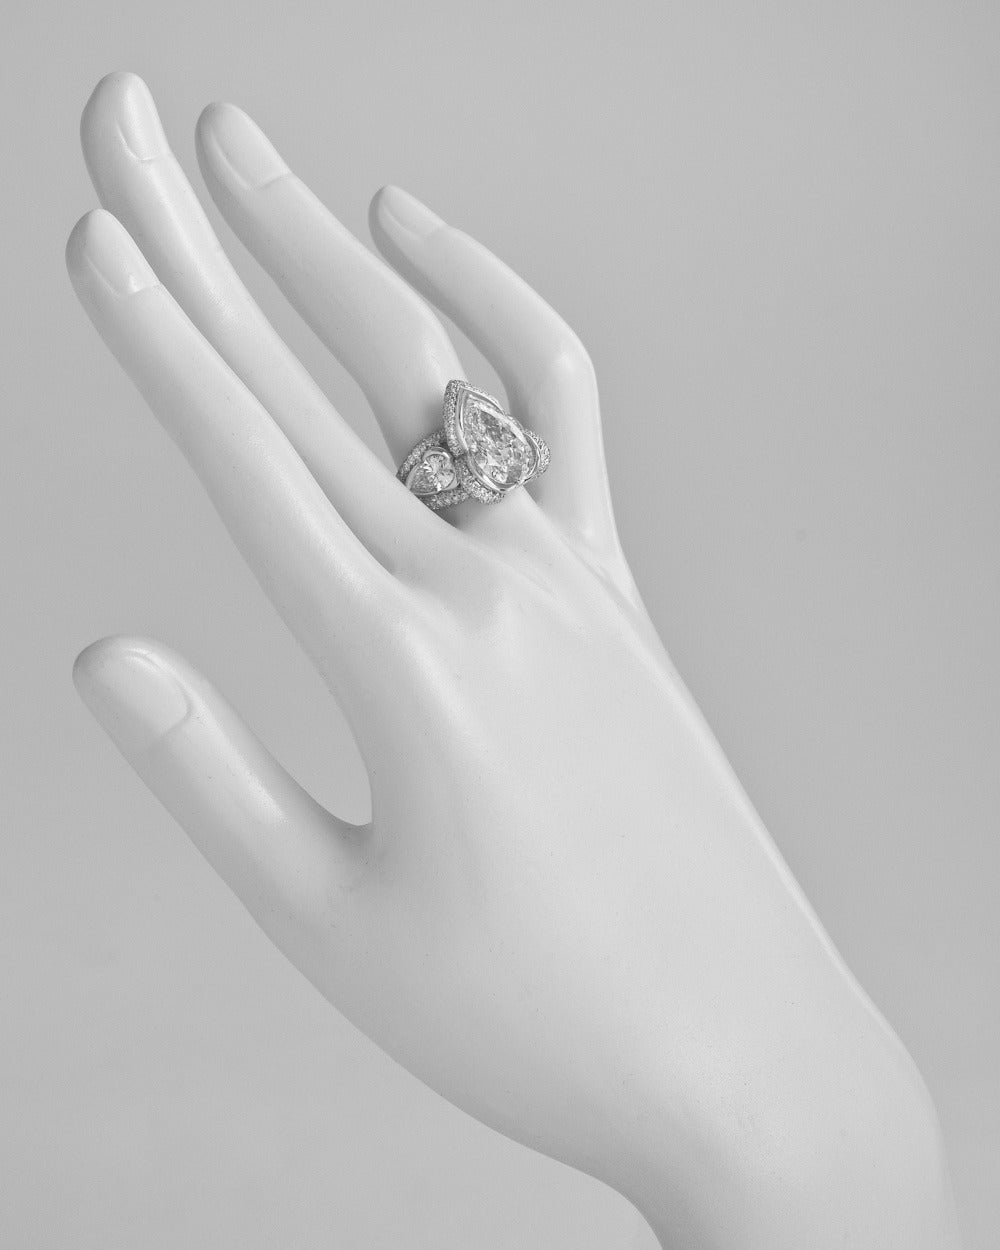 Mauboussin 3 05 Carat Pear Shaped Diamond Ring at 1stdibs